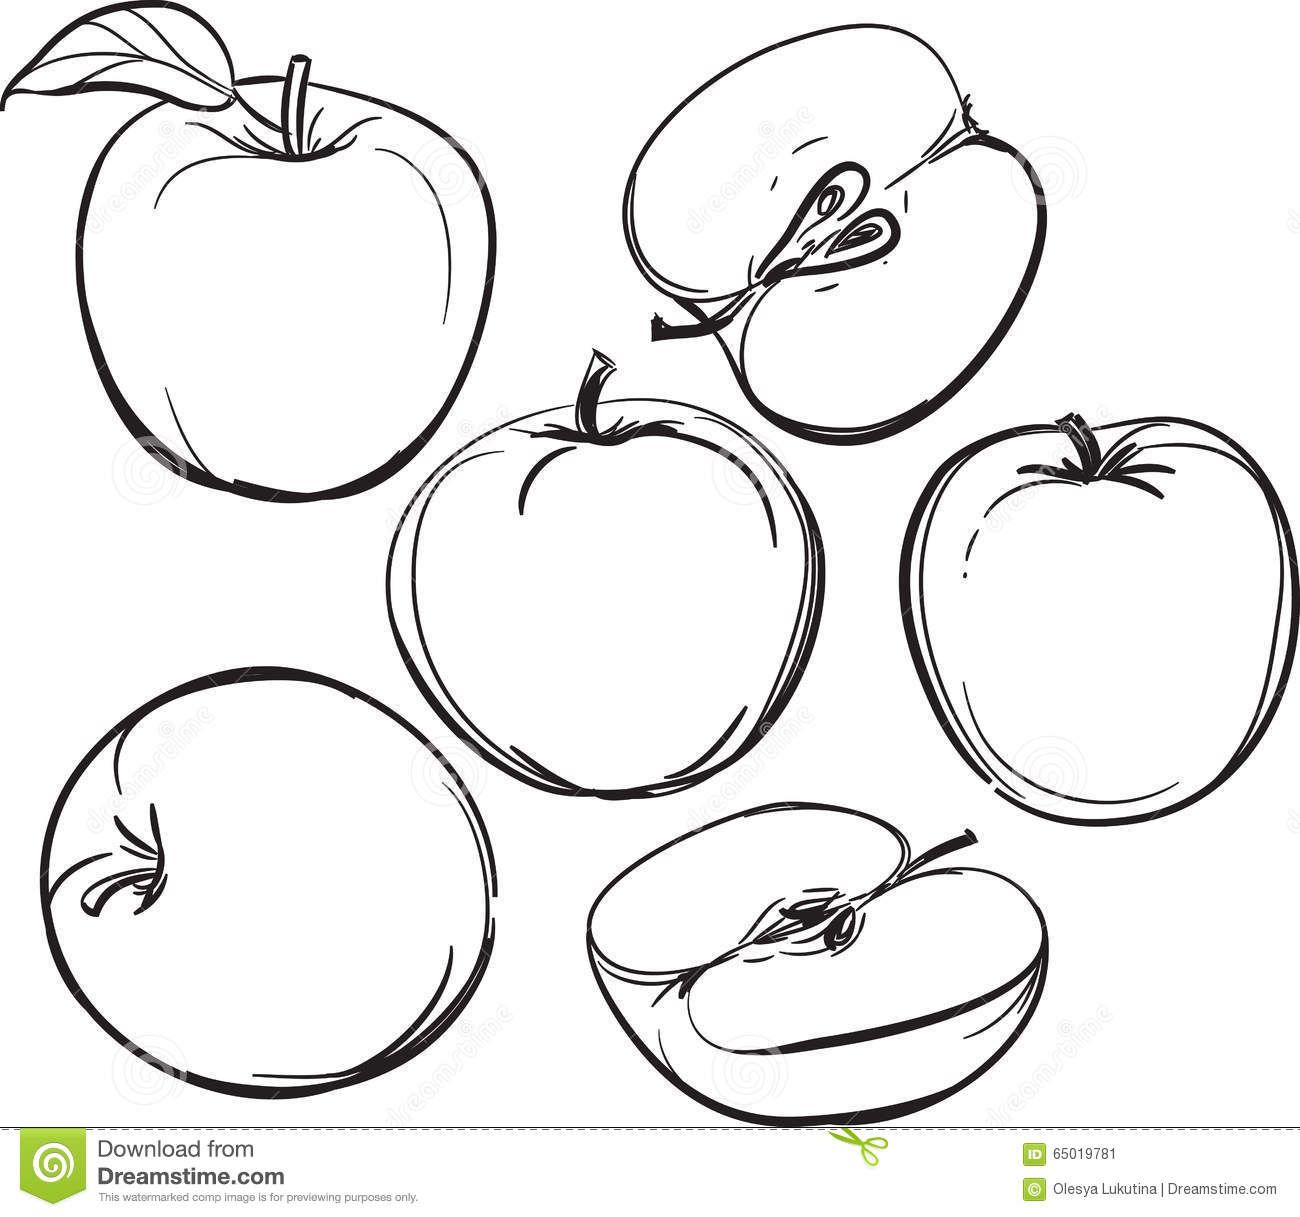 Apple Line Drawing Of Apples On A White Background One Color Drawing Apple Drawings Line Art Drawings